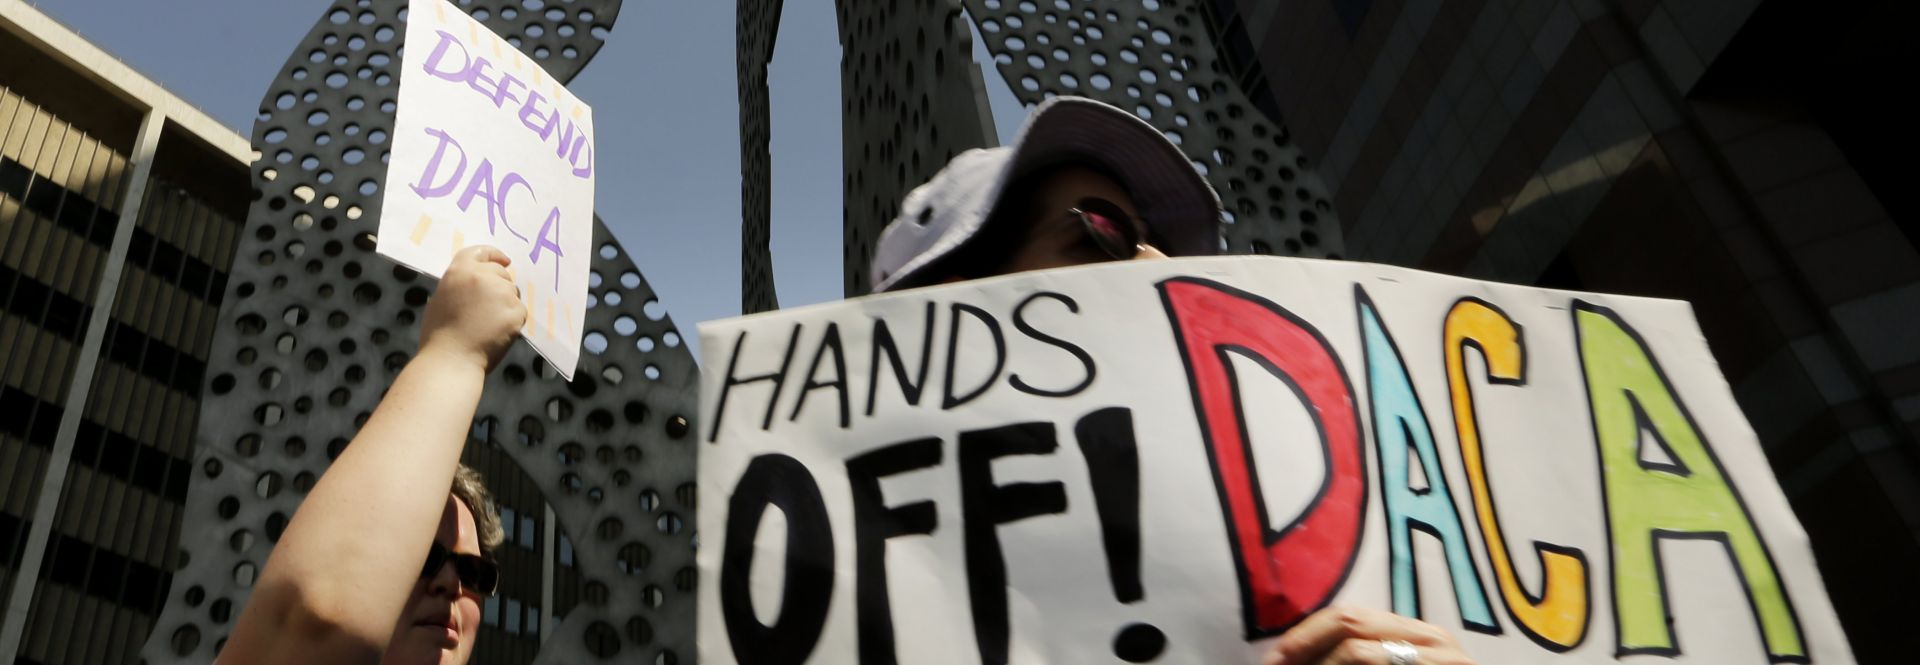 Protesters chant during a rally in support of Deferred Action for Childhood Arrivals (DACA) at the Edward Roybal Federal Building in downtown Los Angeles, California, USA Sept. 1, 2017. EPA-EFE/PAUL BUCK